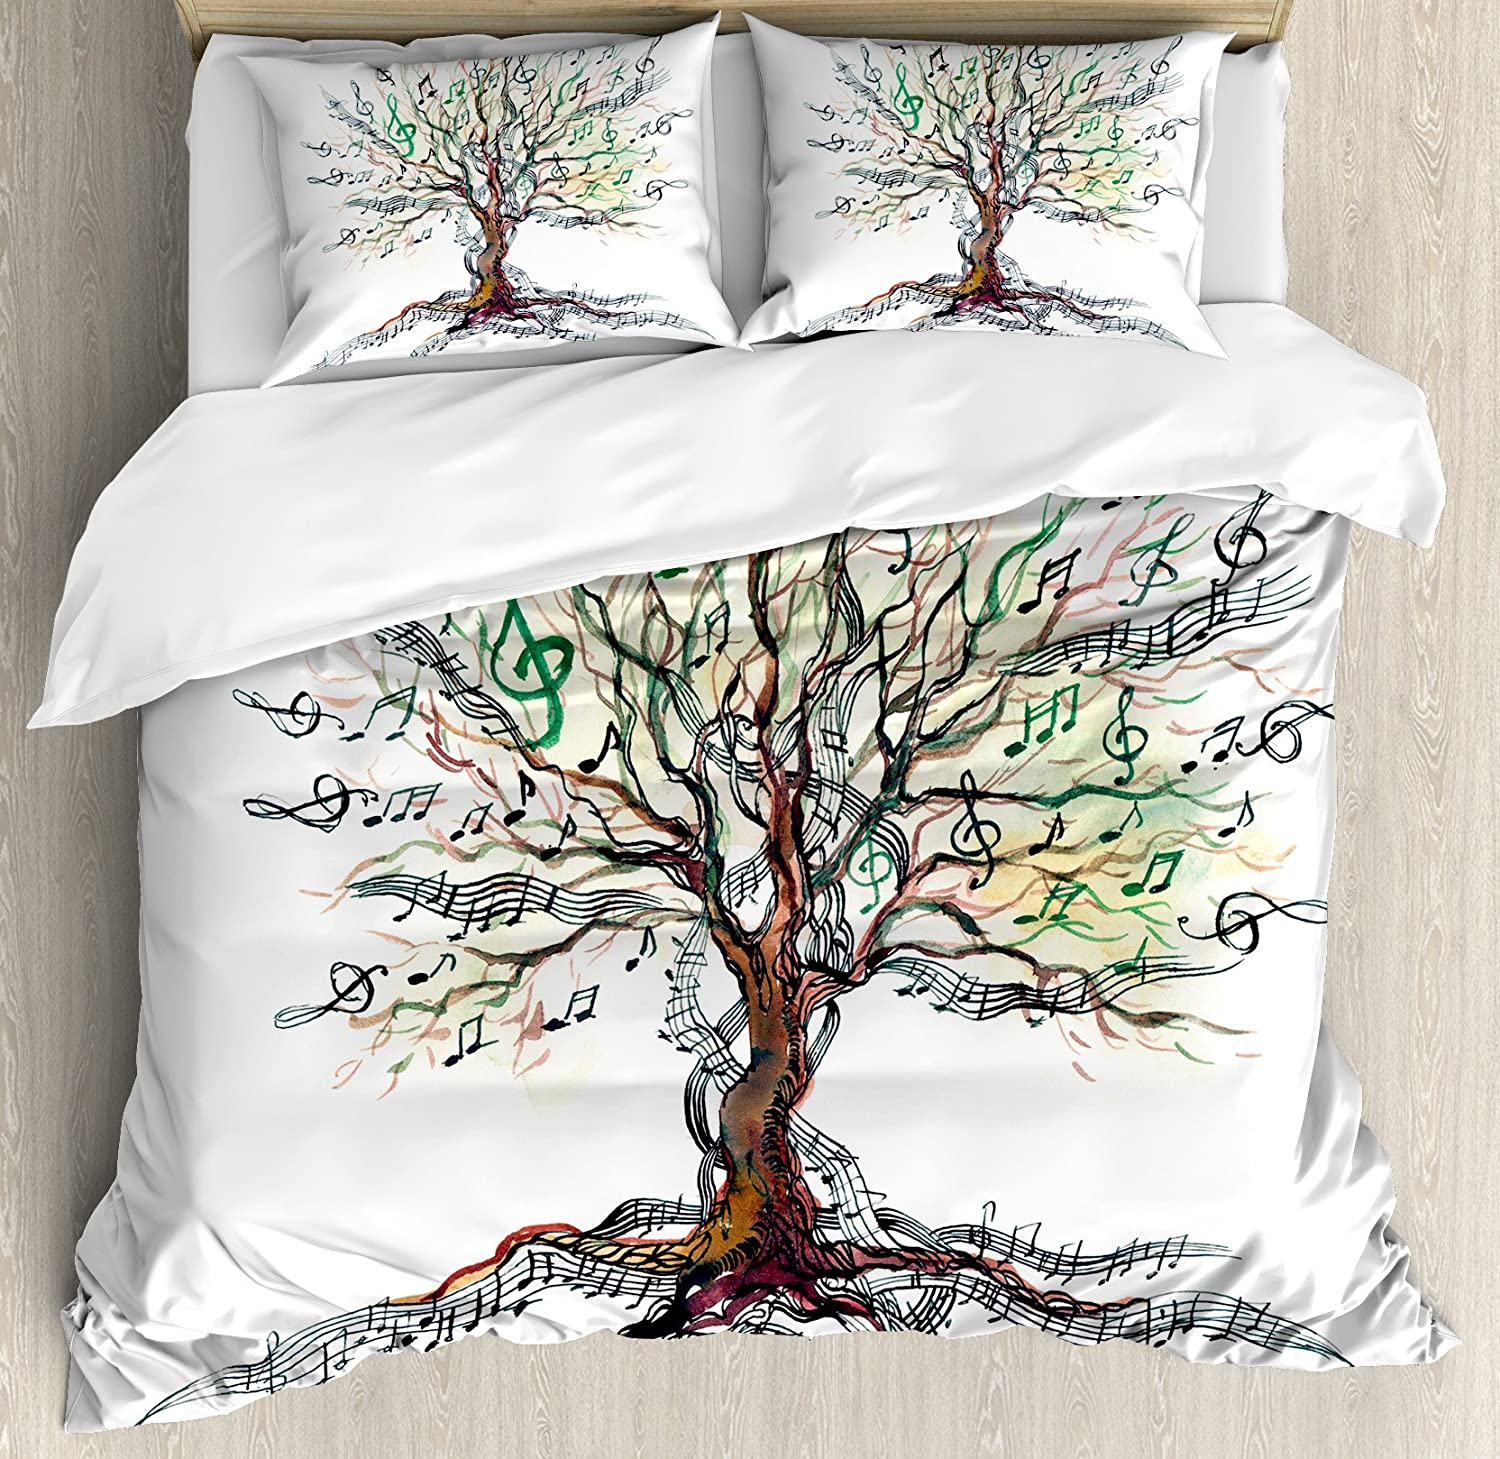 Ambesonne Music Decor Duvet Cover Set Queen Size Musical Tree Autumn Theme with Clef Trunk Swirl Nature Illustration Leaves Colors Creative Design Decorative 3 Piece Bedding Set with 2 Pillow Shams nev/_12694/_queen